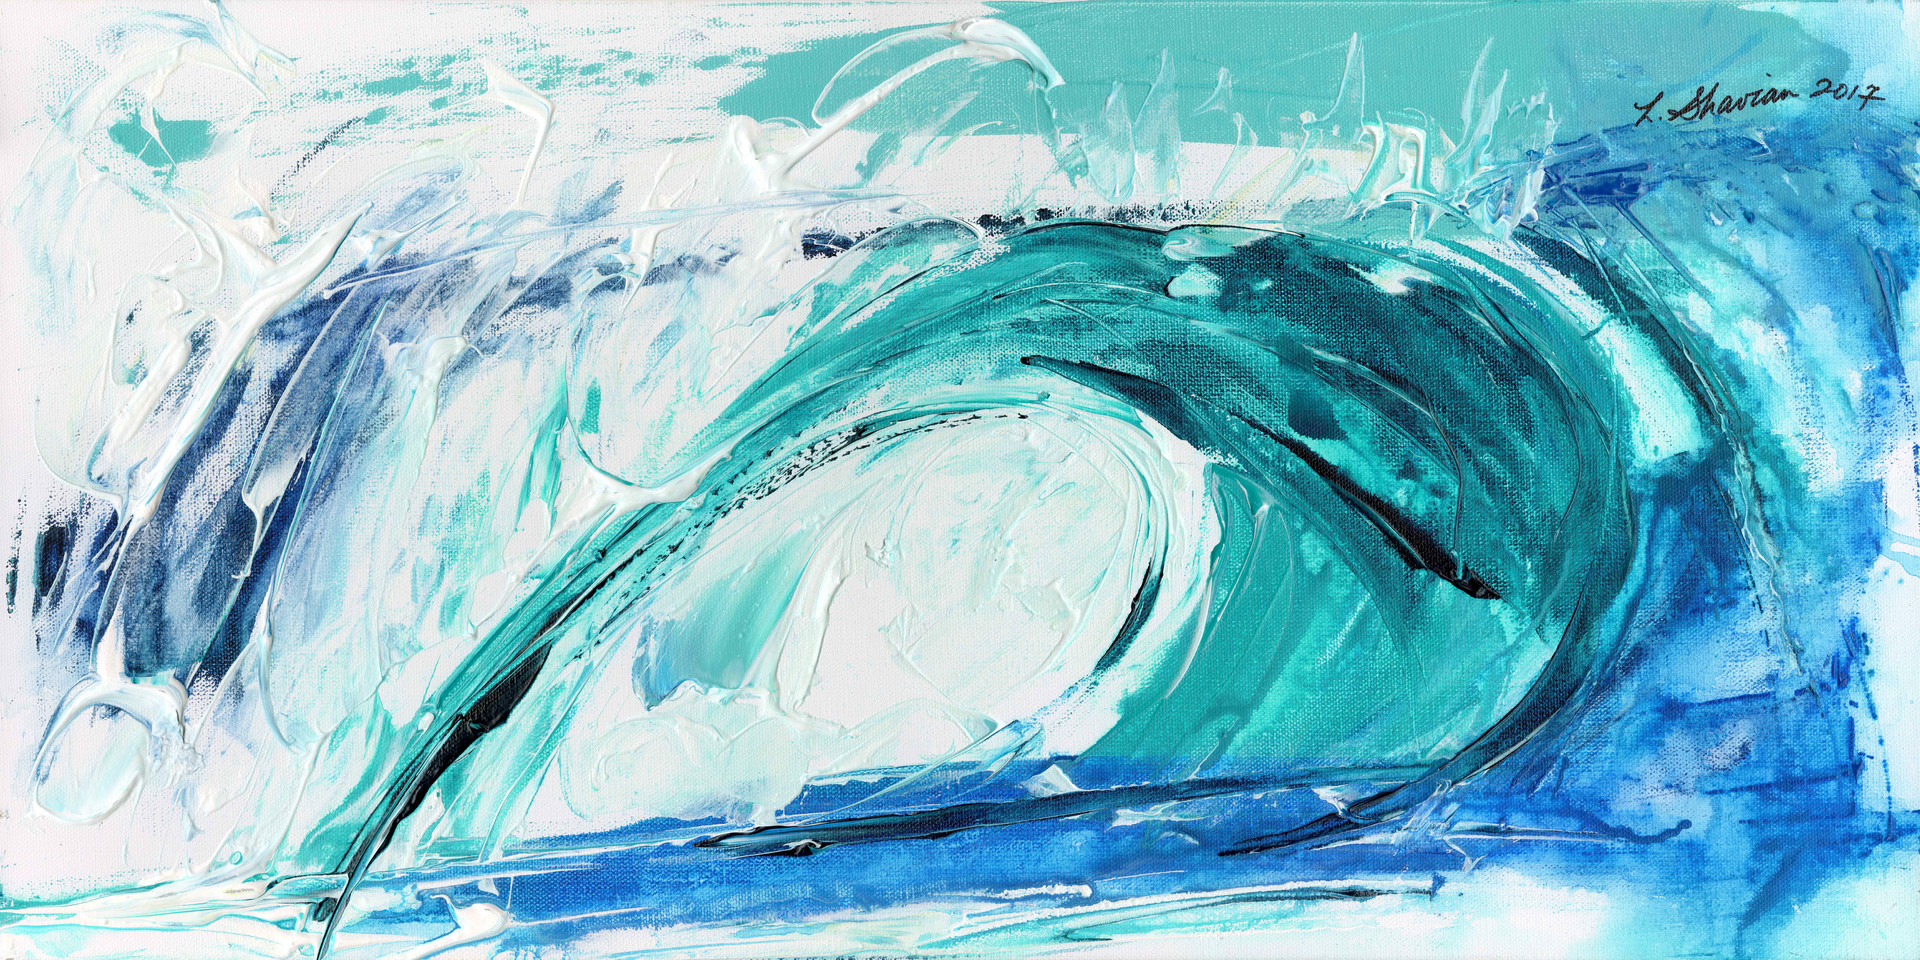 A Wave of Consequence 18hx36w $600